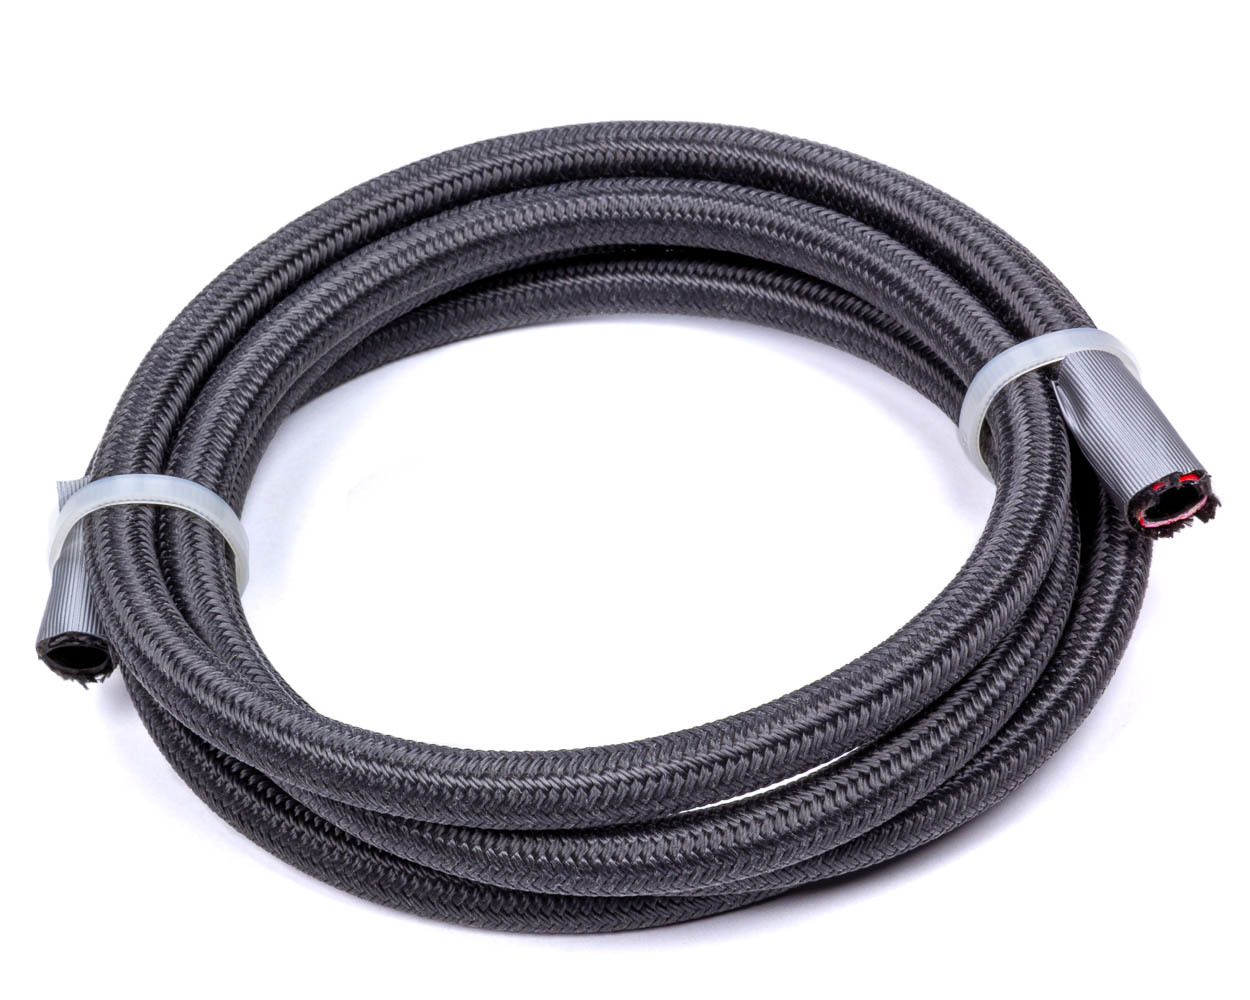 Fragola 2701004 Hose, Race-Rite, 4 AN, 10 ft, Braided Fire Retardant Fabric, PTFE, Black, Each